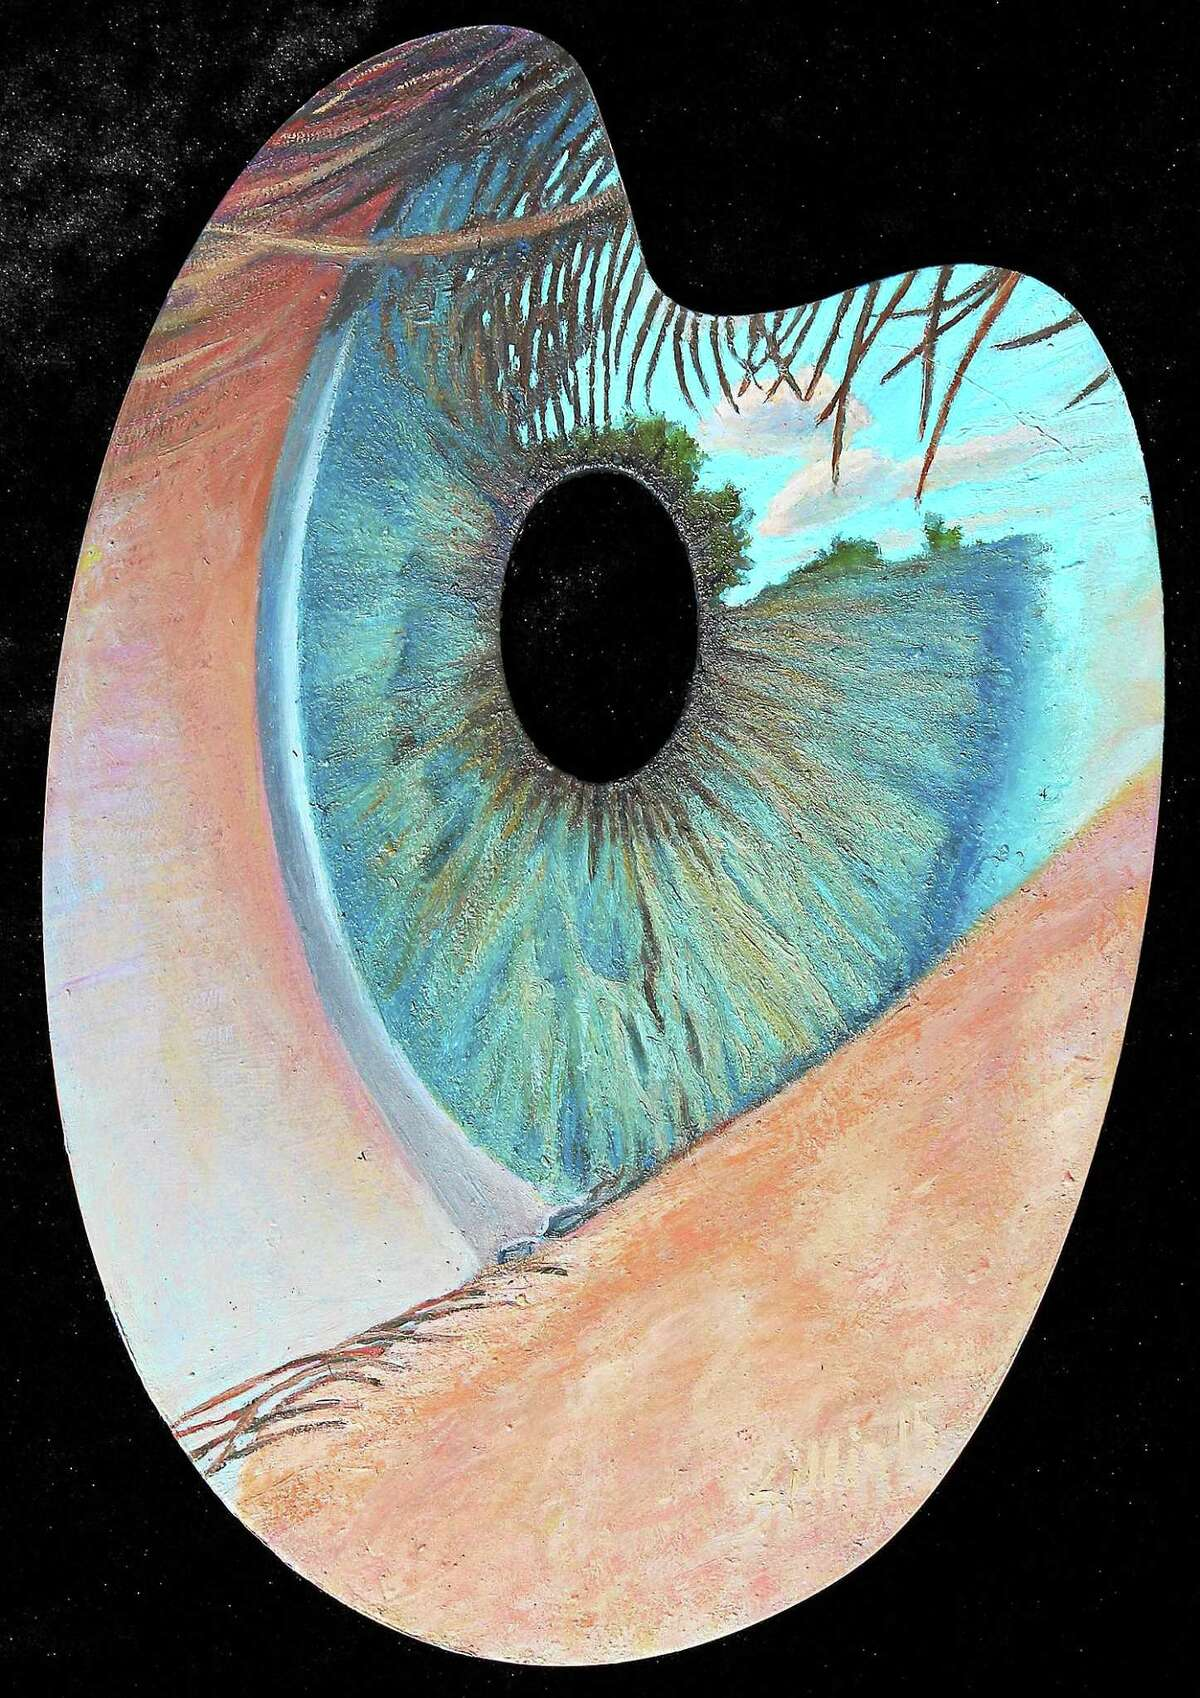 Contributed photo William Sillin, The Eye of the Beholder, 2015, oil on wood palette, Sunderland, MA. The pallettes adorn three trees at the Florence Griswold Museum for its